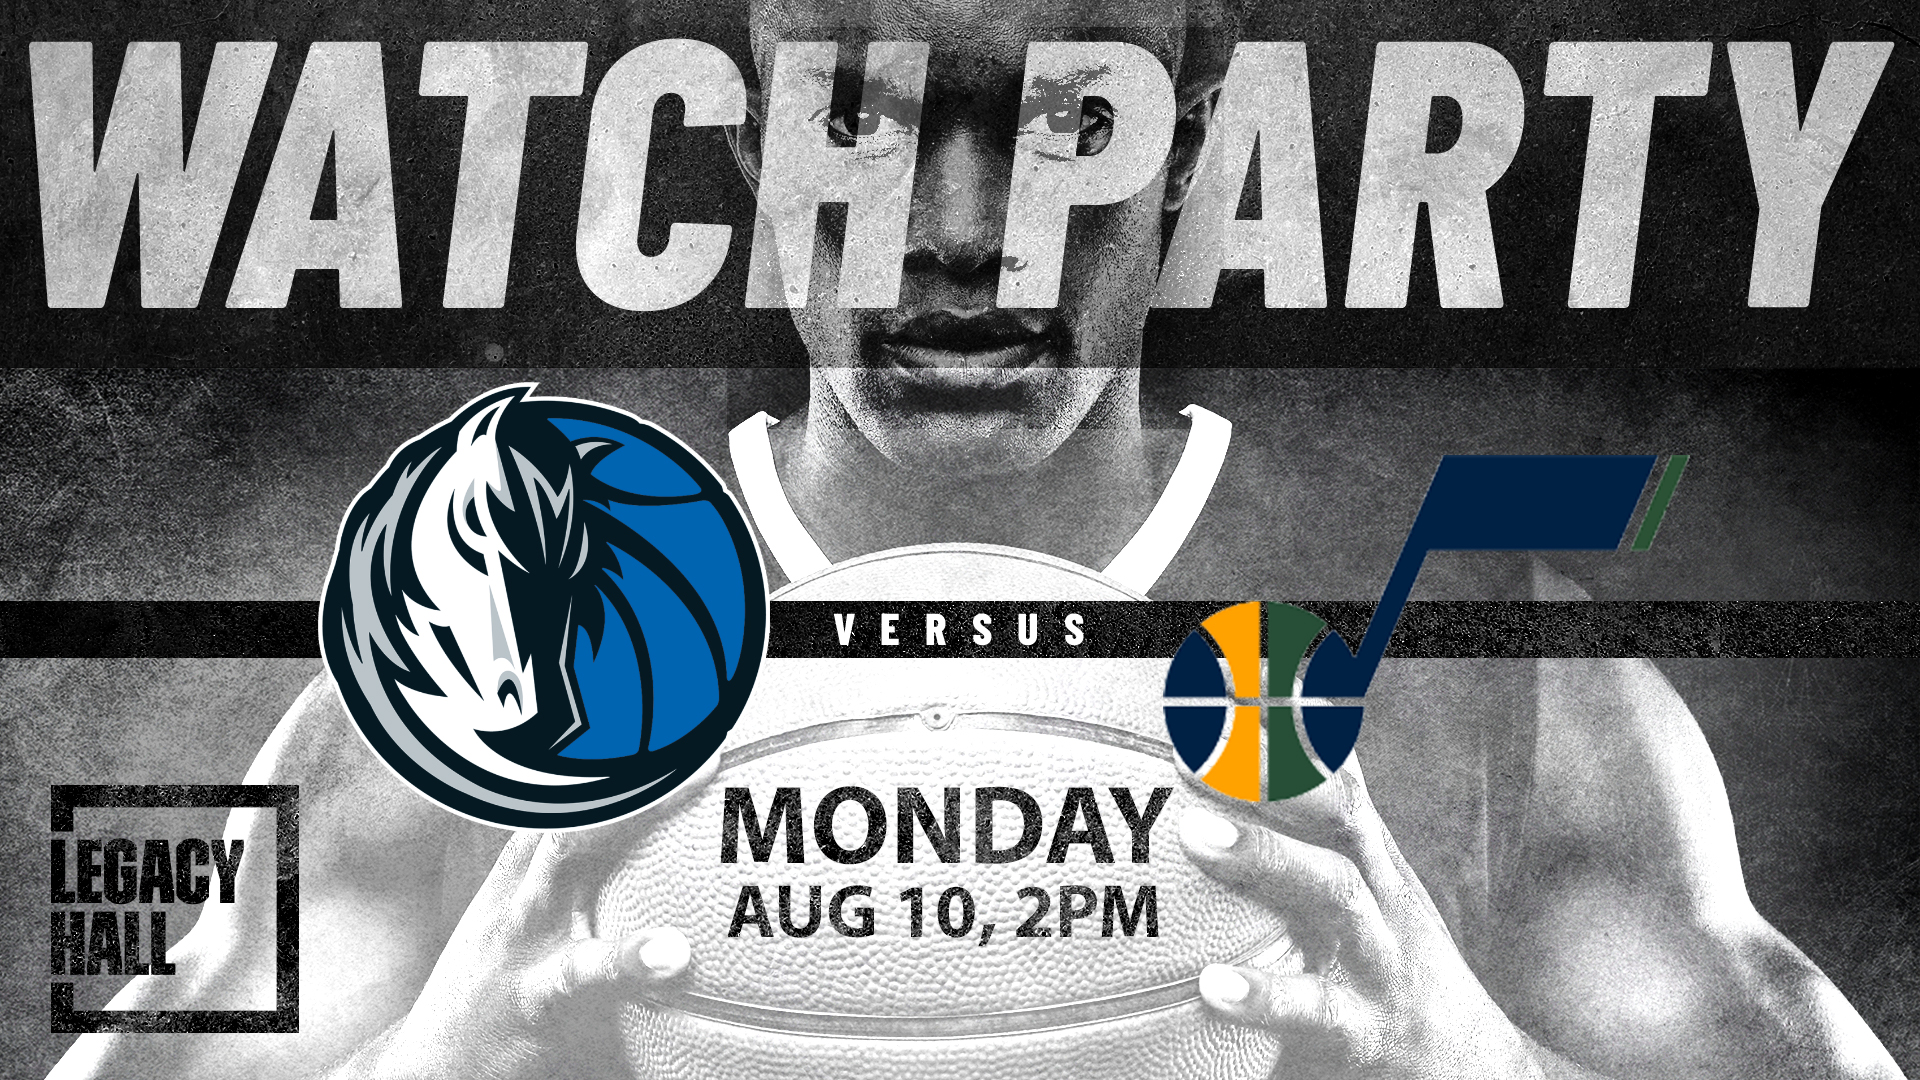 Promo image of Mavericks vs. Jazz Watch Party